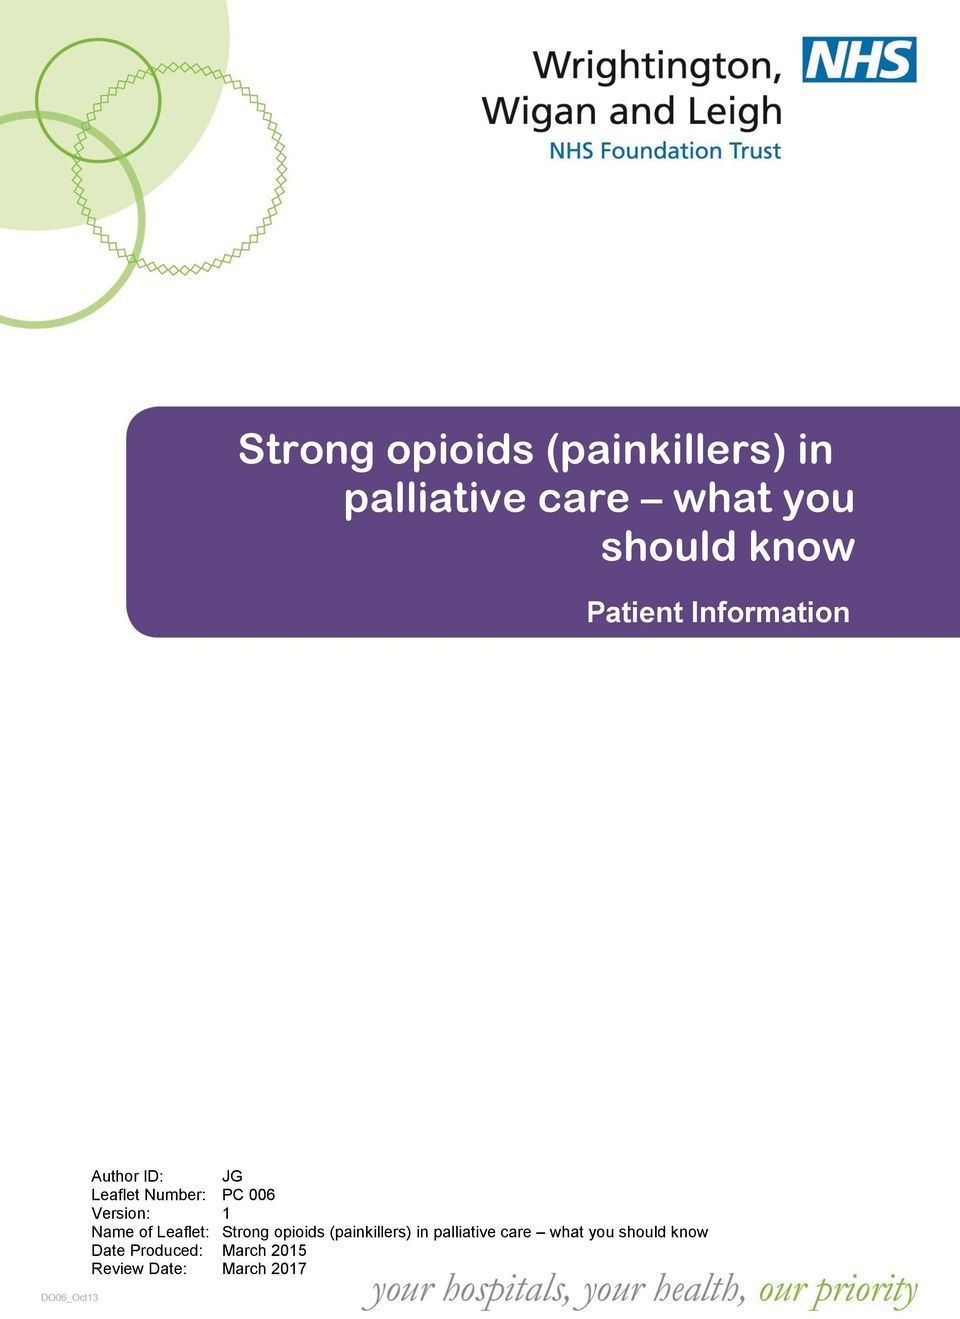 (painkillers) in palliative care what you should know Date Produced: March 2015 Review